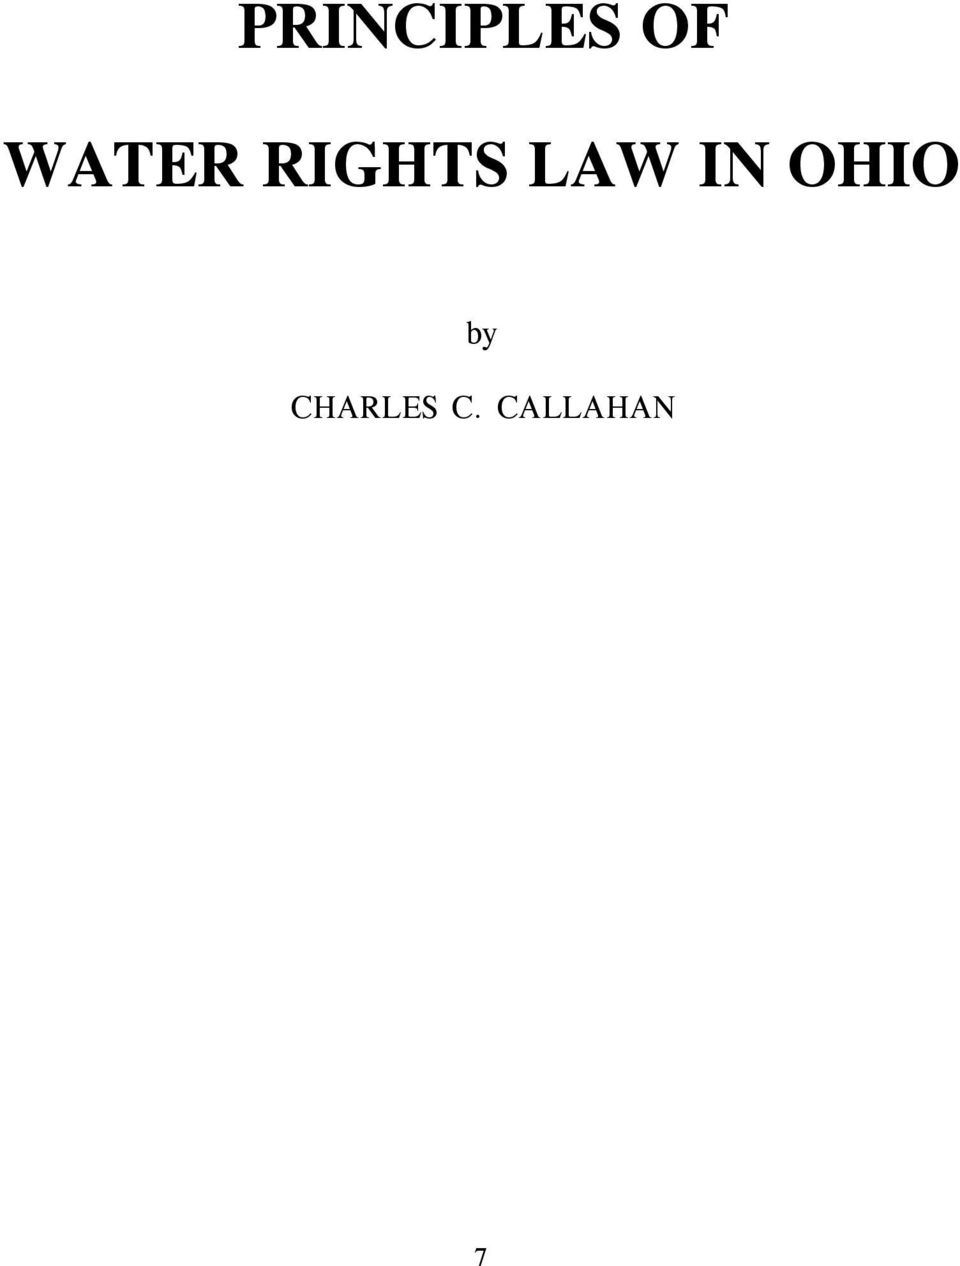 LAW IN OHIO by